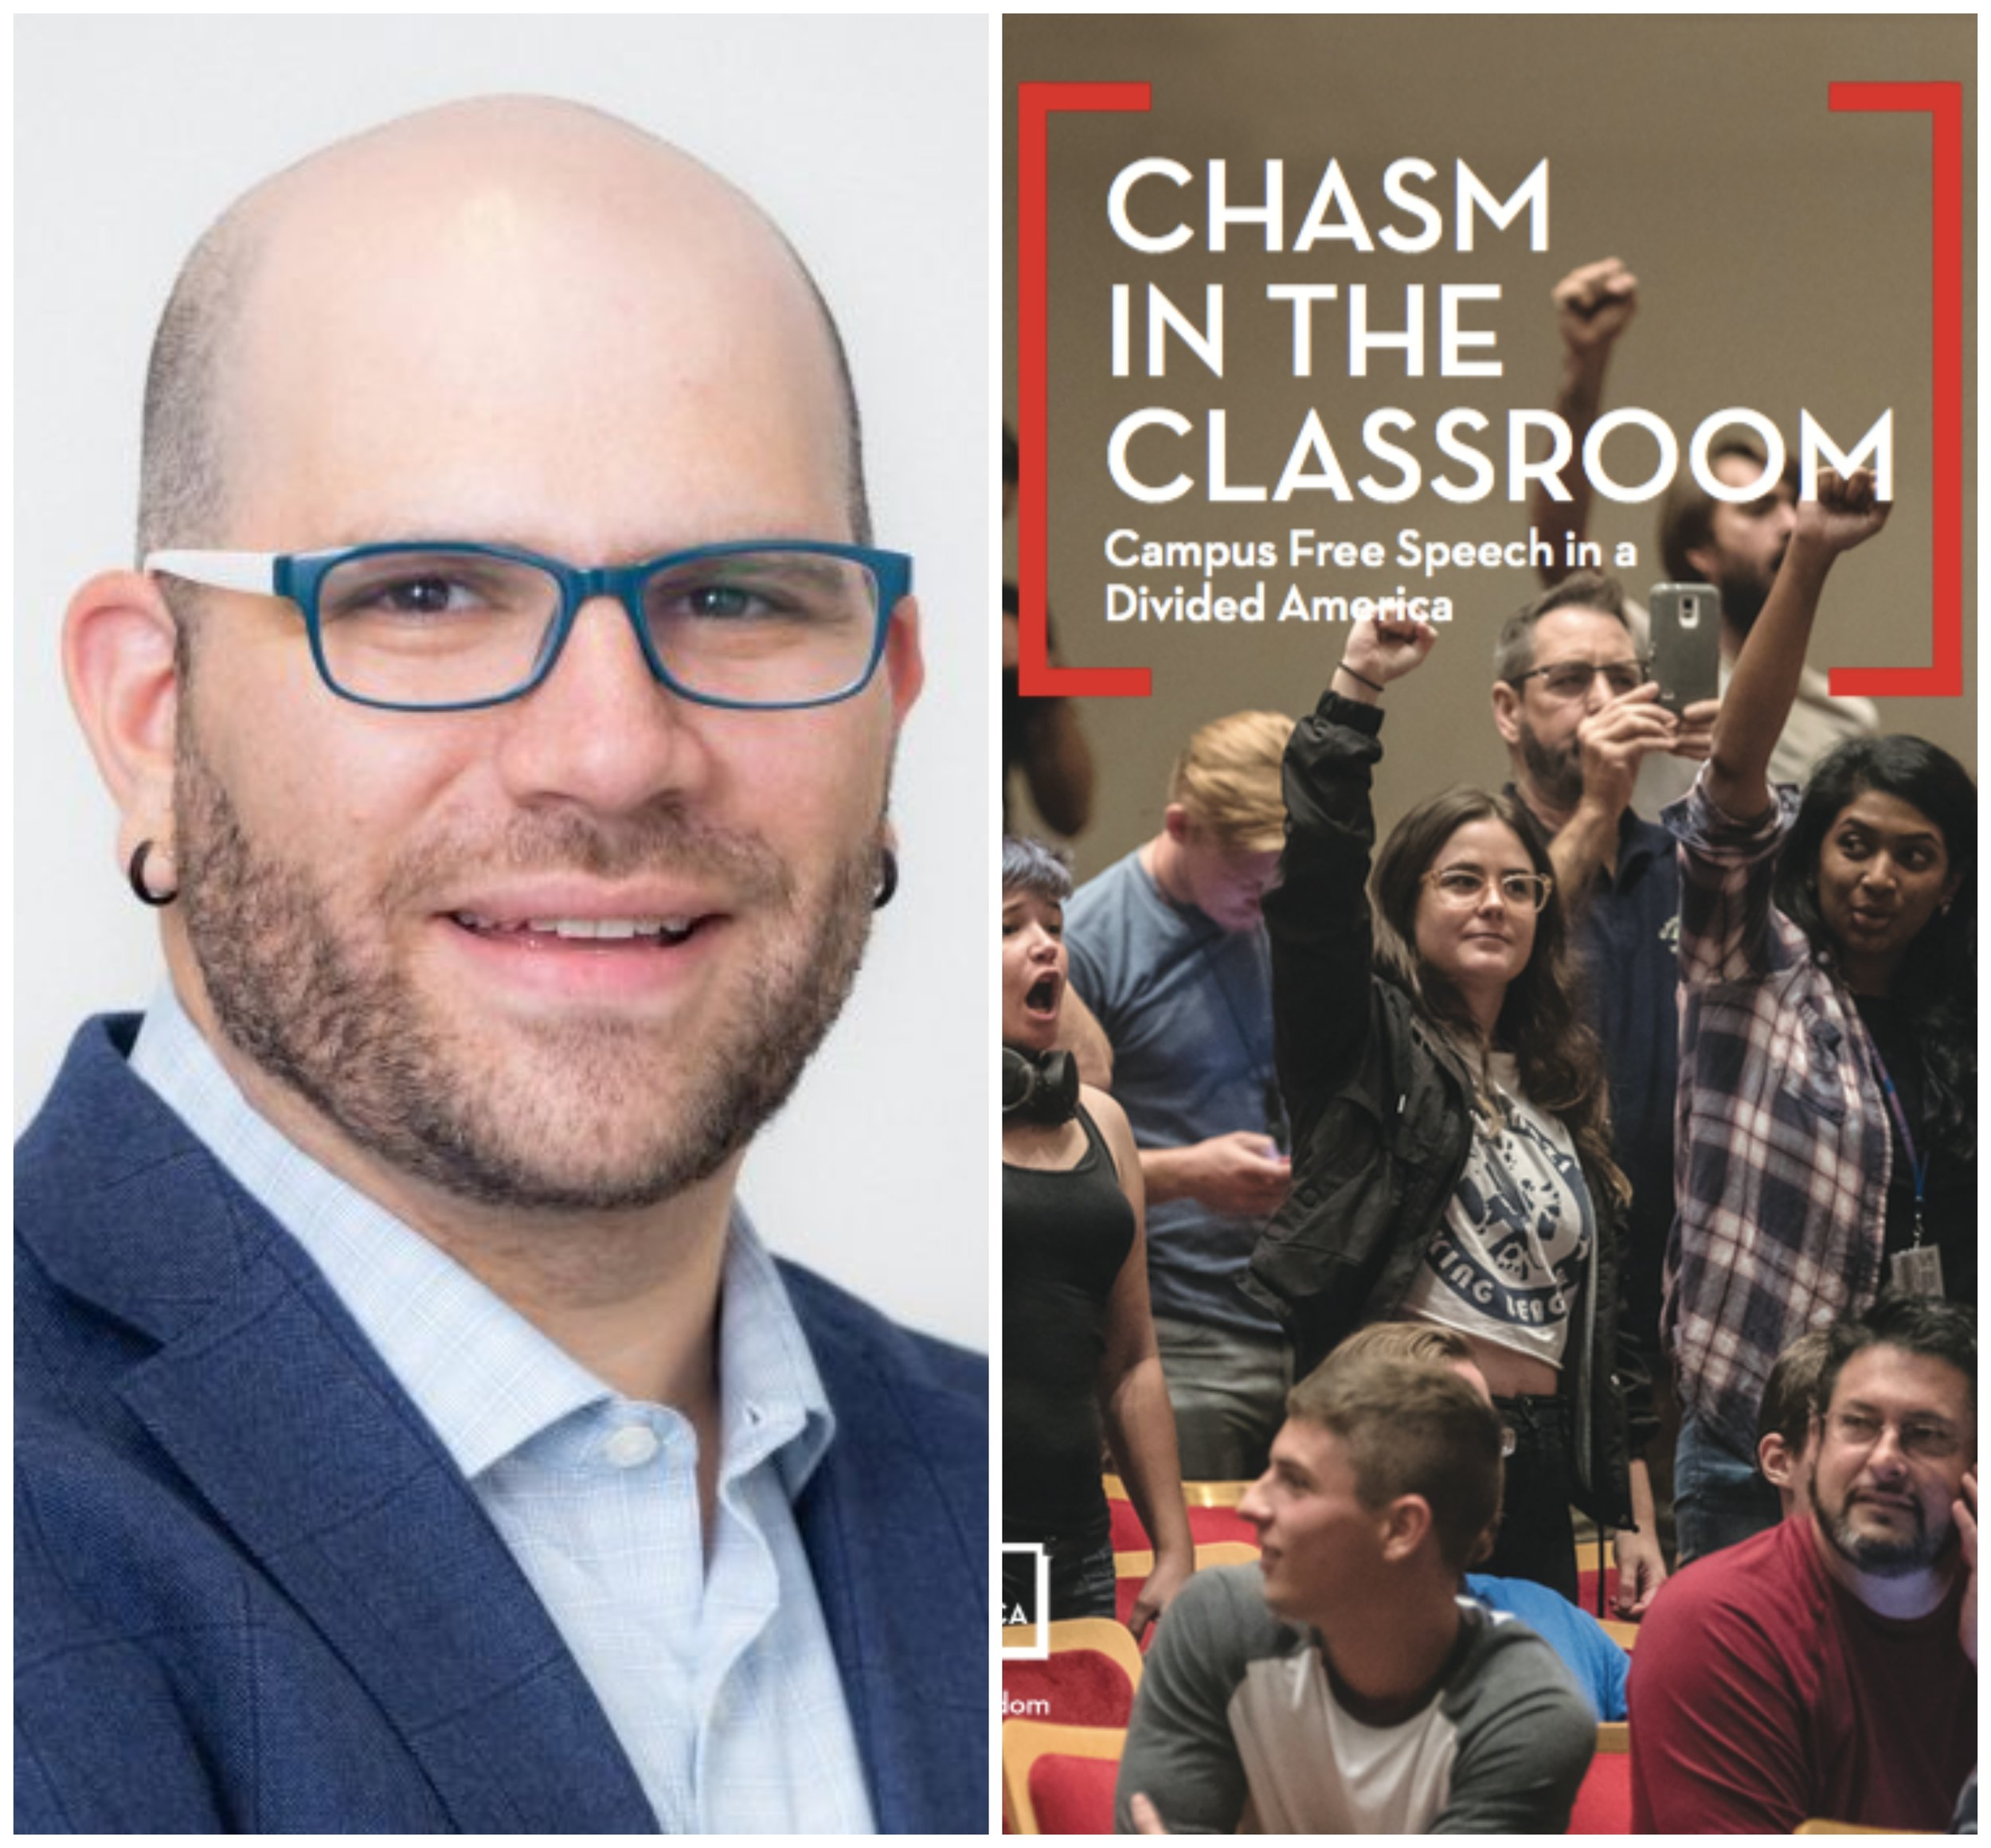 FREE SPEECH 59 : Chasm in the Classroom: Campus Speech in a Divided America, with Jonathan Friedman -